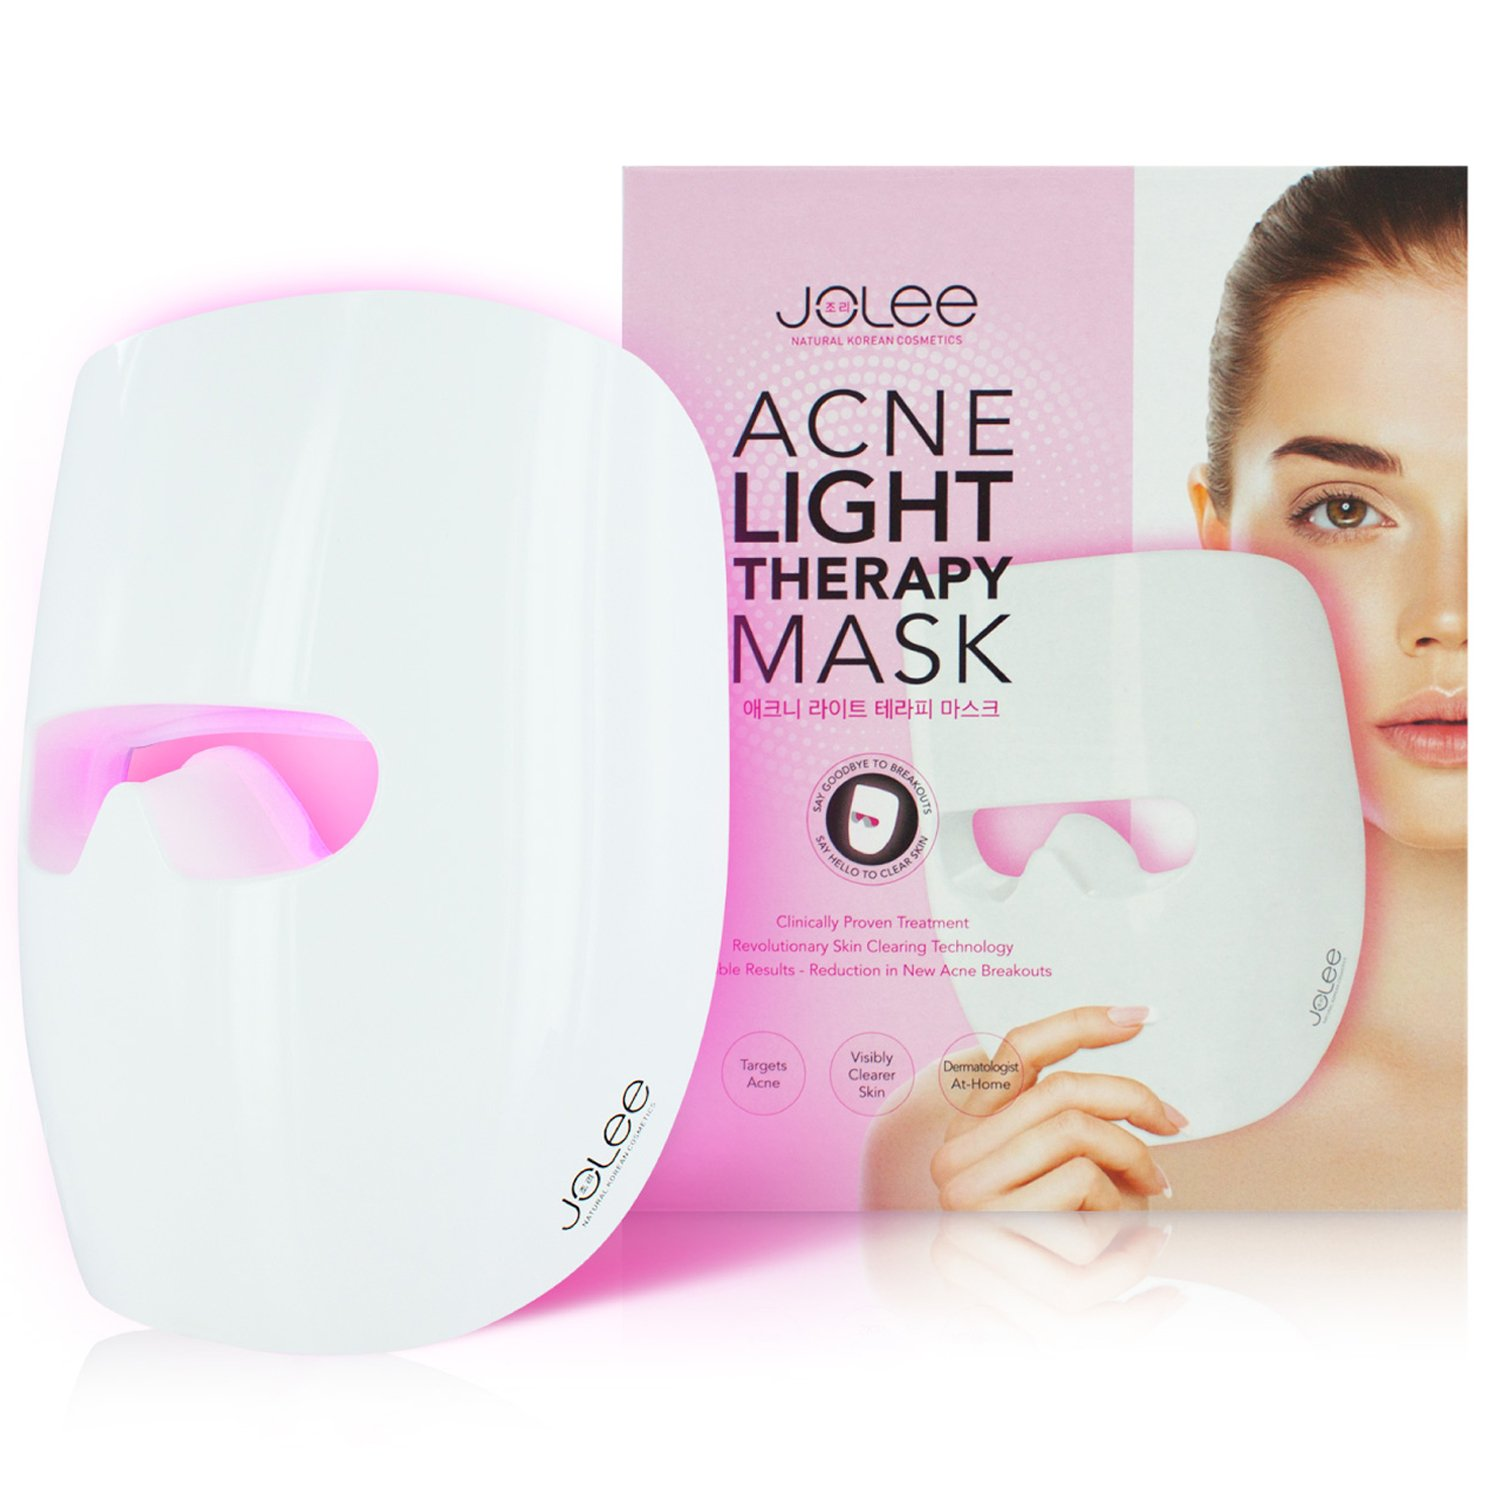 JoLee LED Acne Light Therapy Acne Mask Most Advanced Light Technology [UNLIMITED USES with No Need to Purchase Activators] for Treatment of Mild-to-Moderate Acne, Spots, Blackheads, Skin Blemishes and Reduces the Appearance of Breakouts, Combats Inflammati